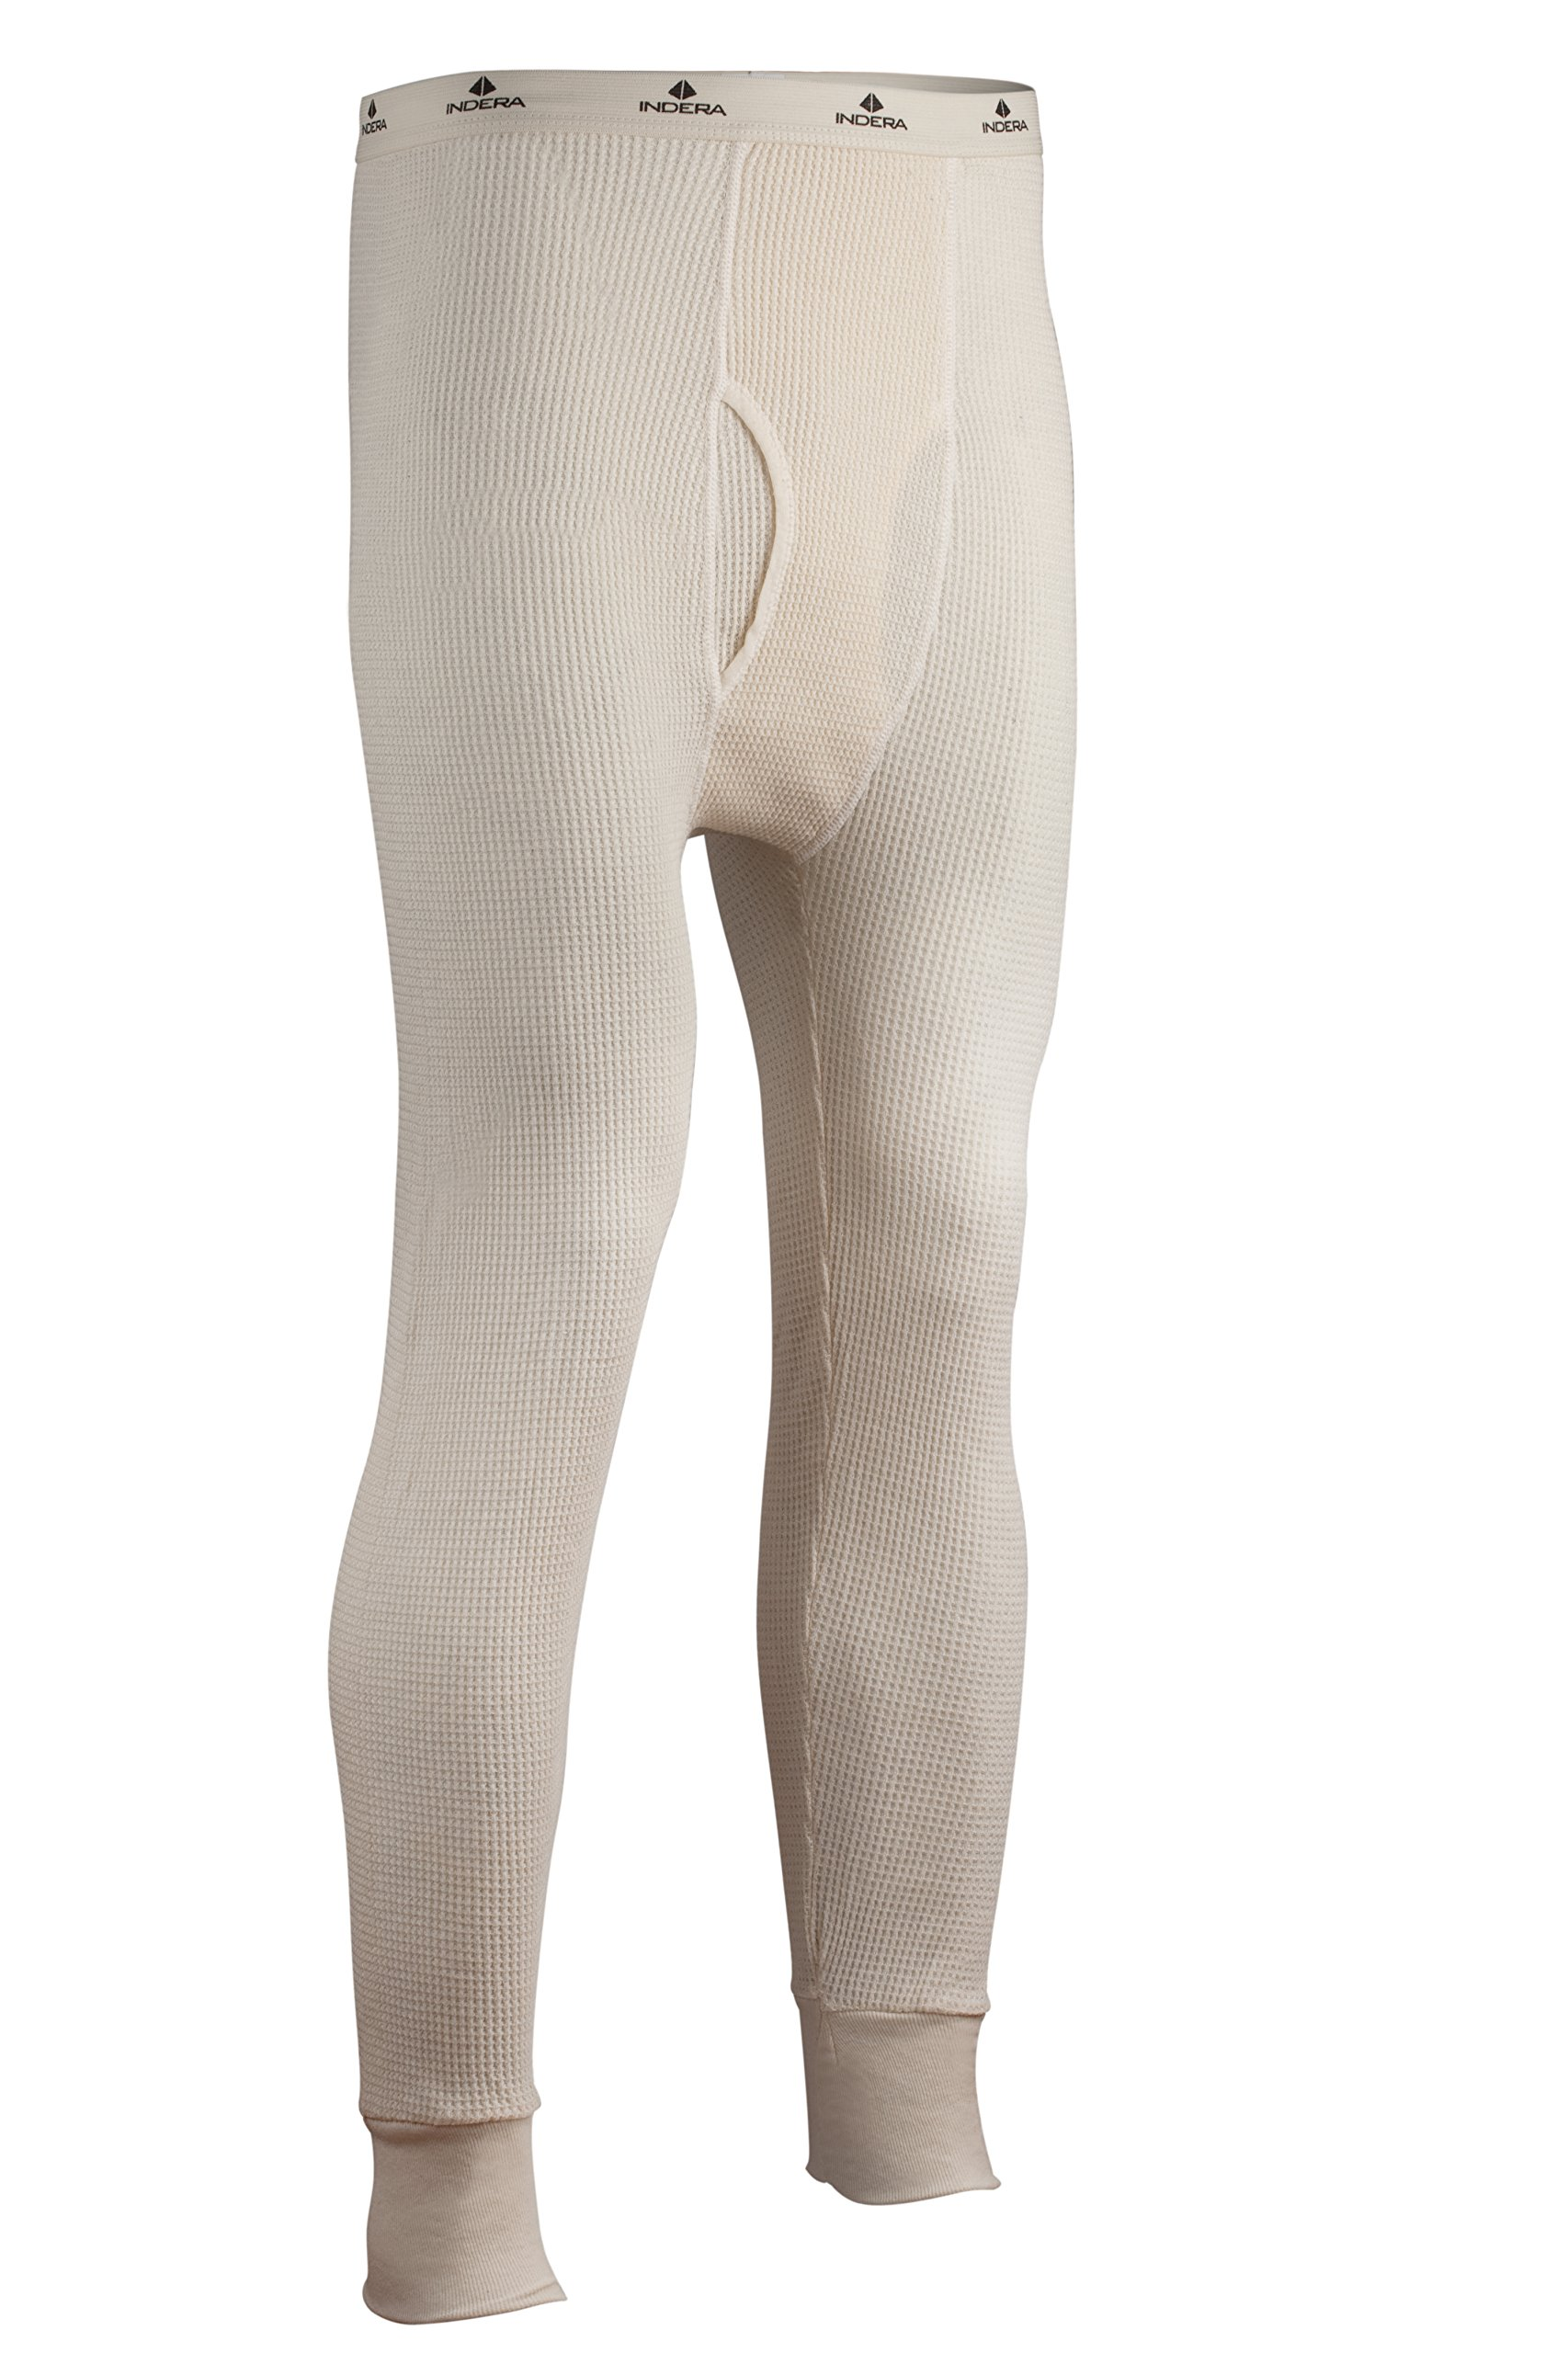 Indera Men's Tall Cotton Heavyweight Thermal Underwear Pant, Natural, Large